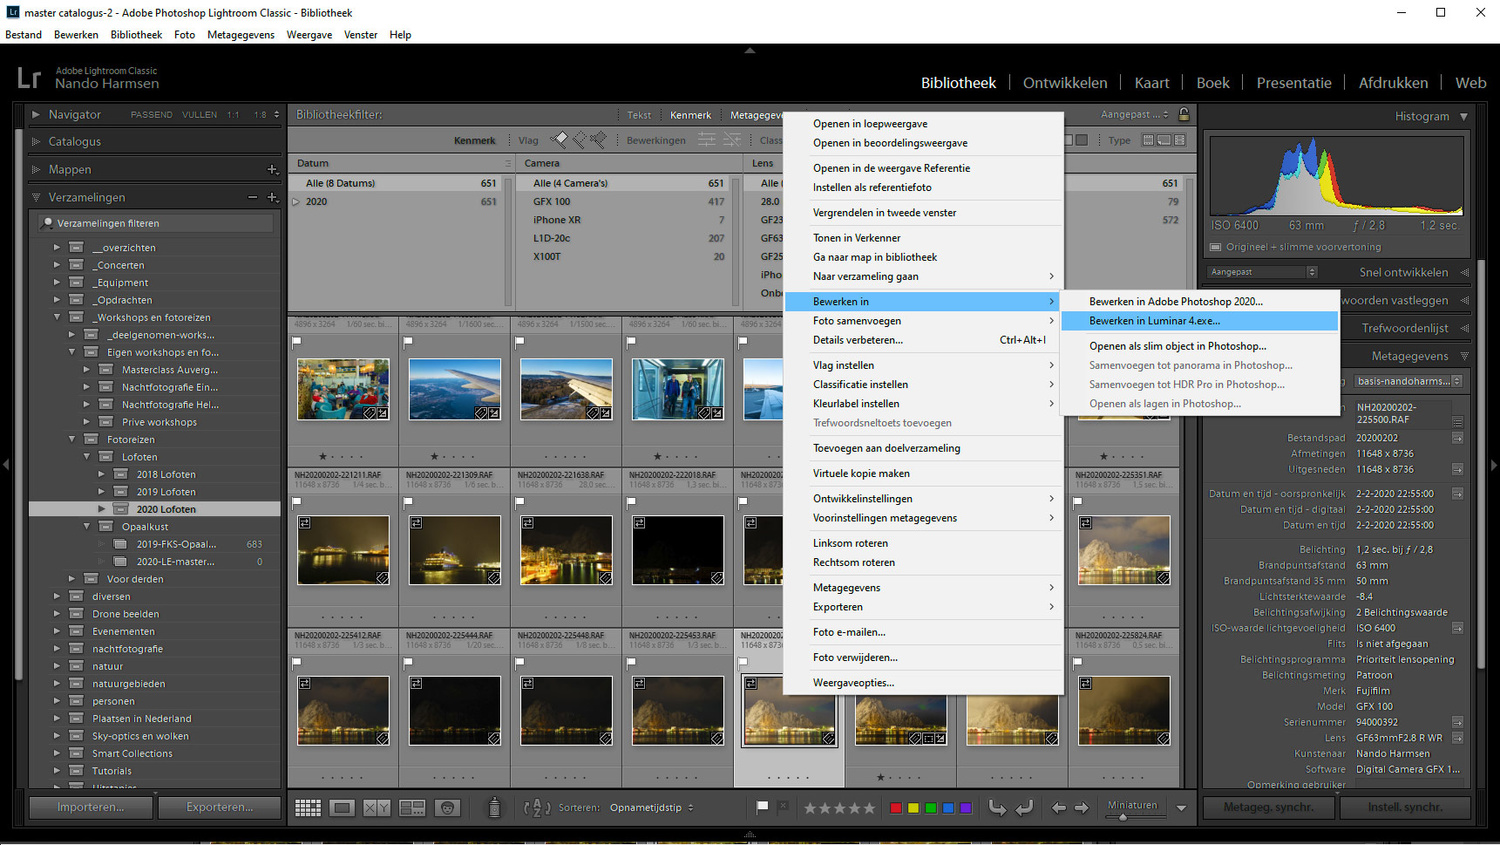 Just use both Luminar and Lightroom. Use the library function of Lightroom, perform simple post-processing, and use Luminar as a plugin to make use of the Artificial Intelligence.